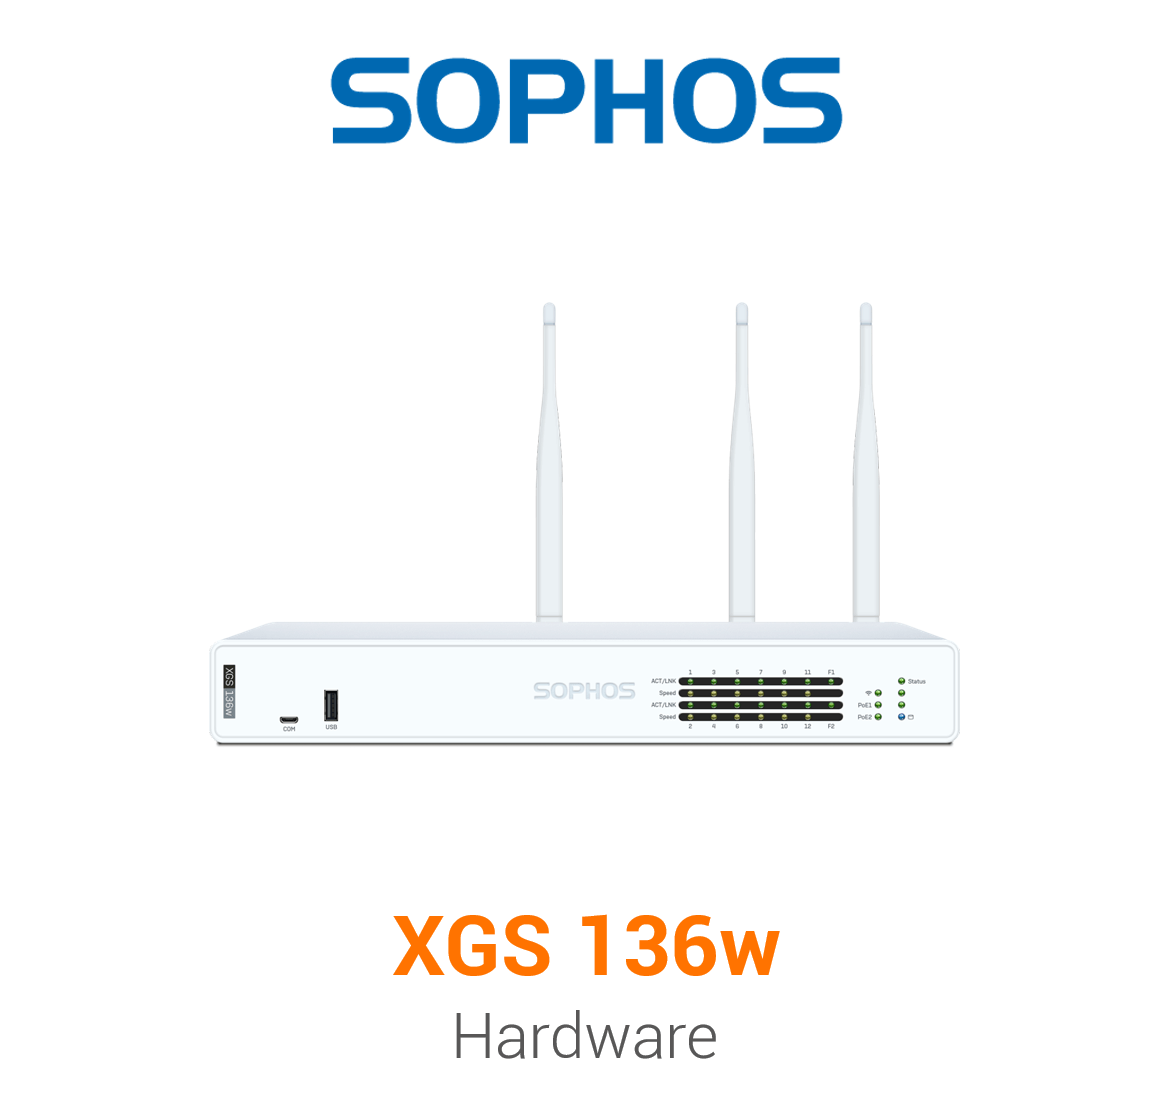 Sophos XGS 136w Security Appliance